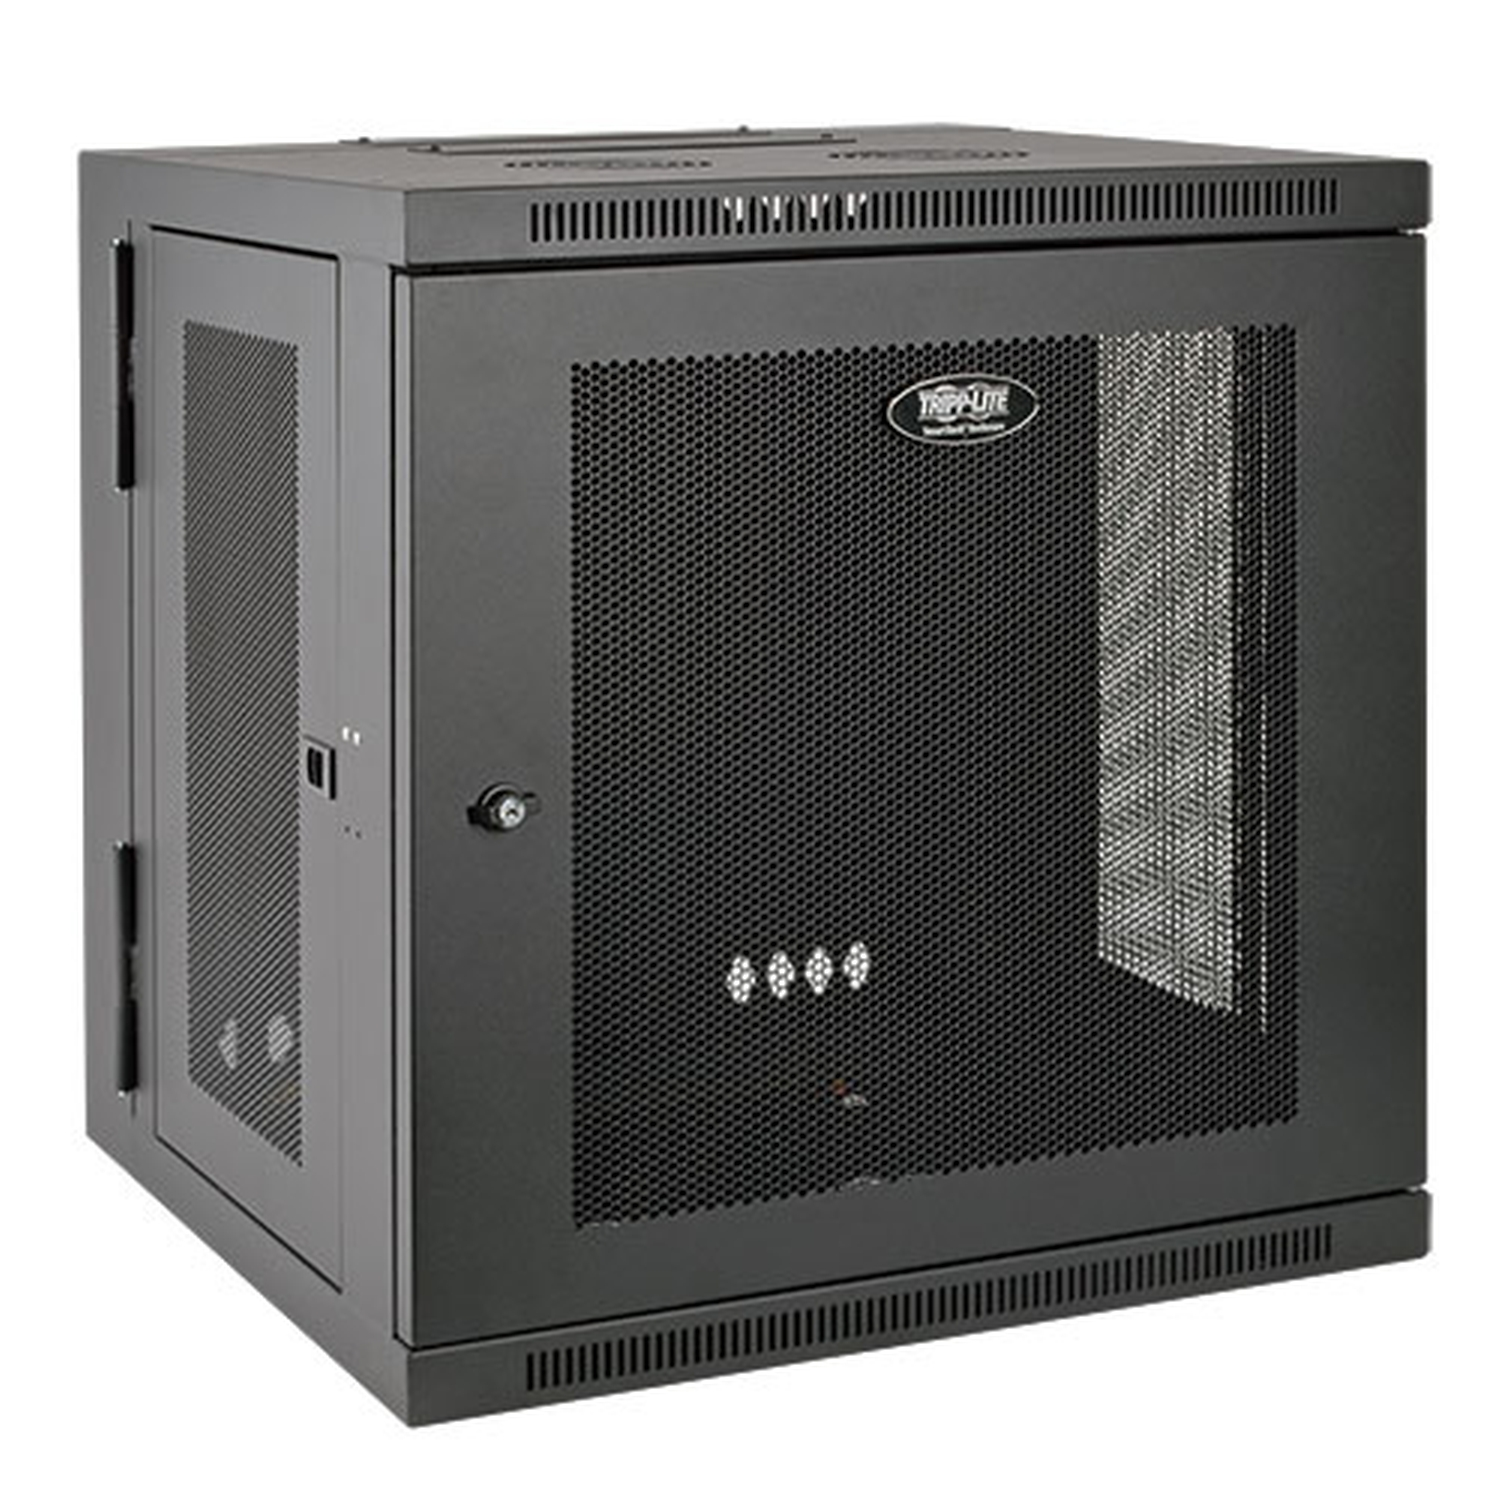 Tripp Lite Srw10us 10u Wall Mount Rack Enclosure Server